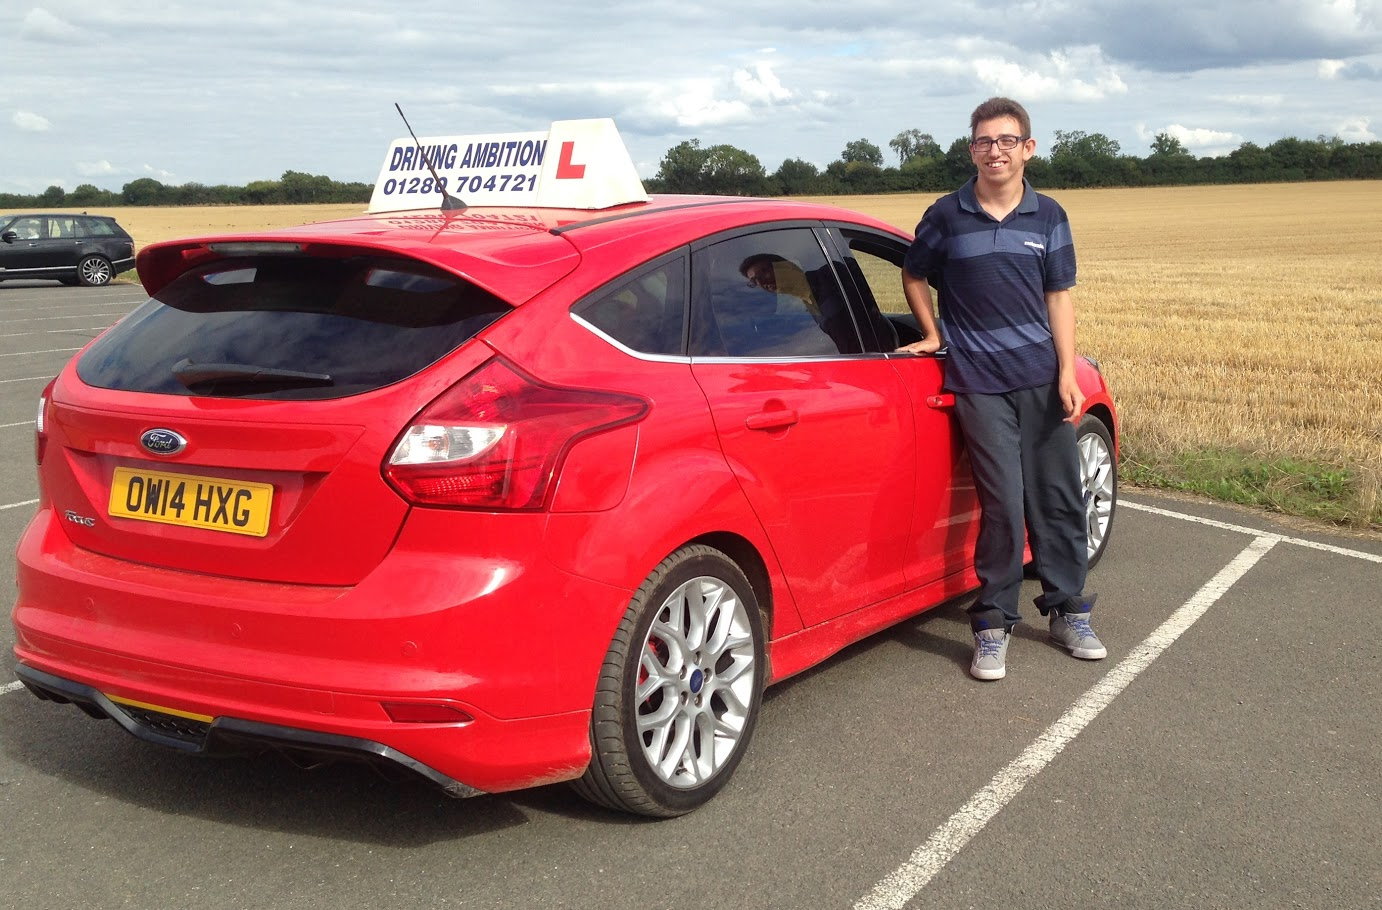 Under 17 driving lessons with Driving Ambition Brackley